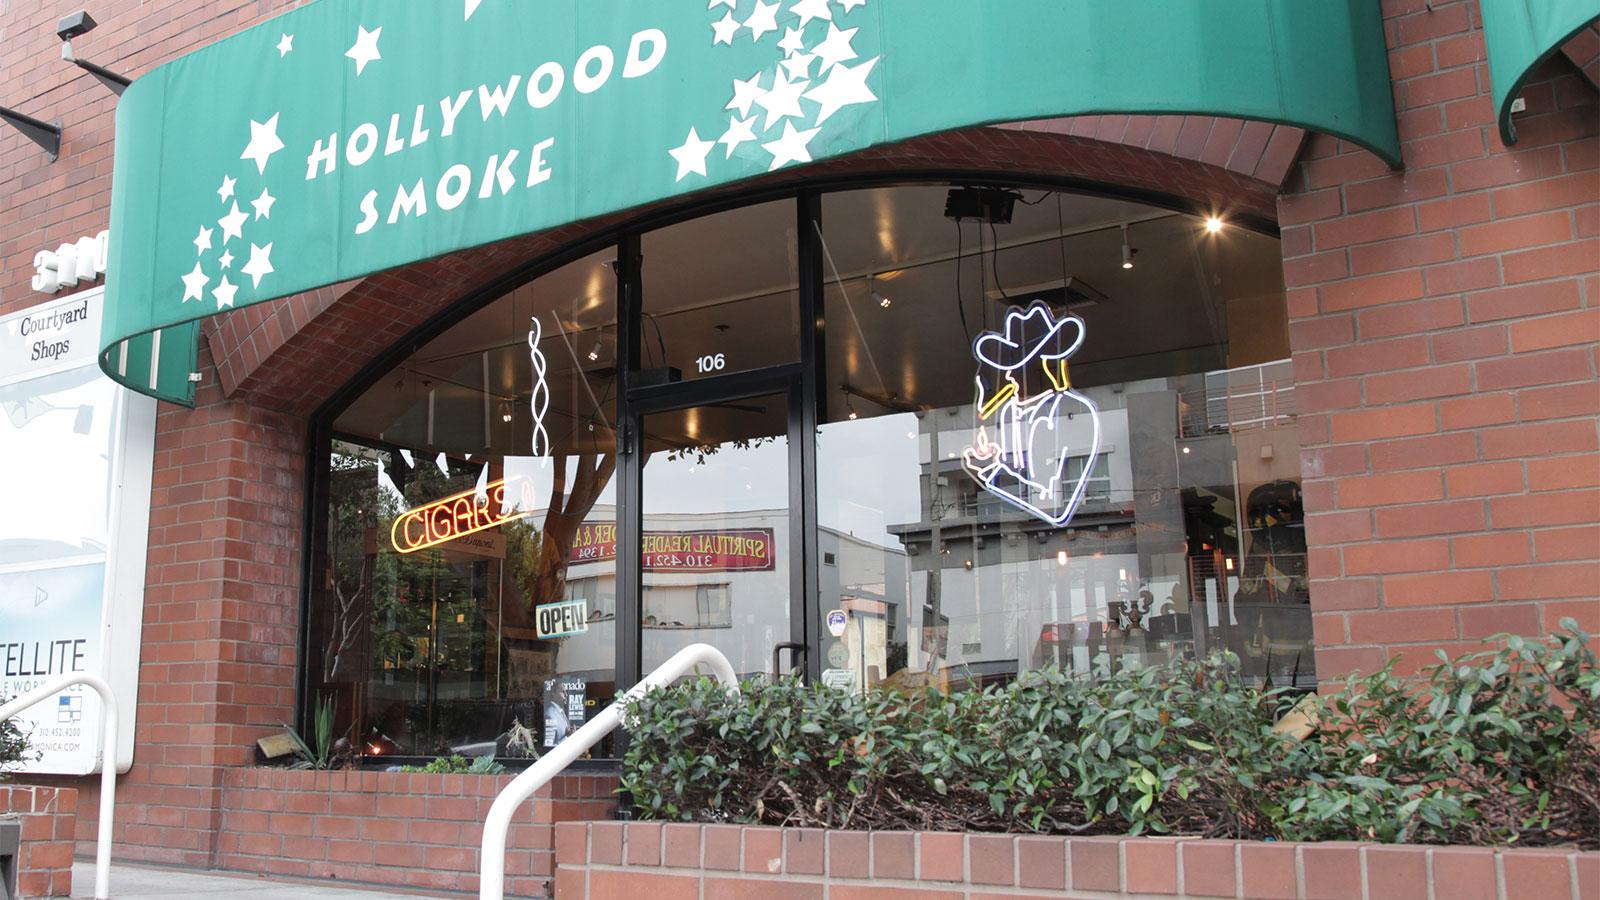 Review: Hollywood Smoke, Santa Monica, California